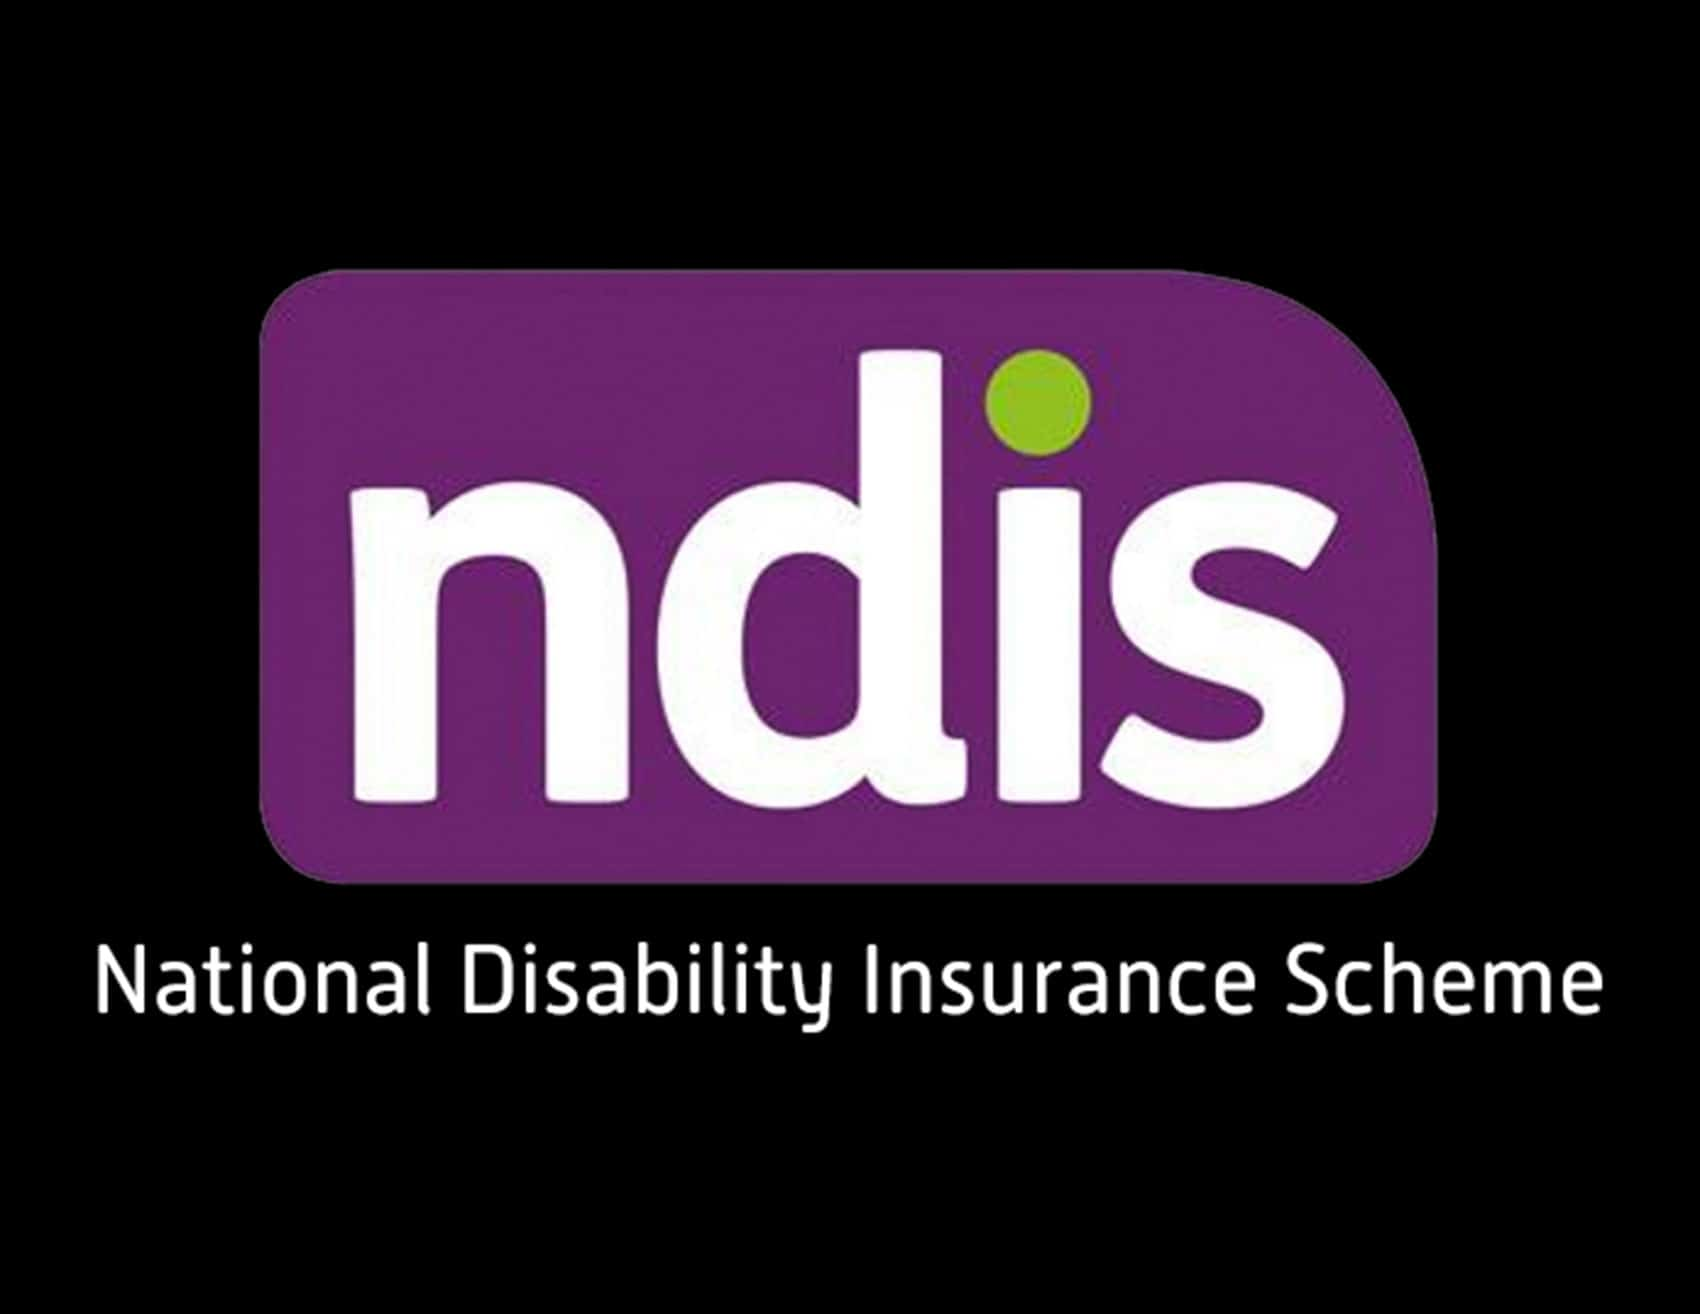 Image for the NDIS resources